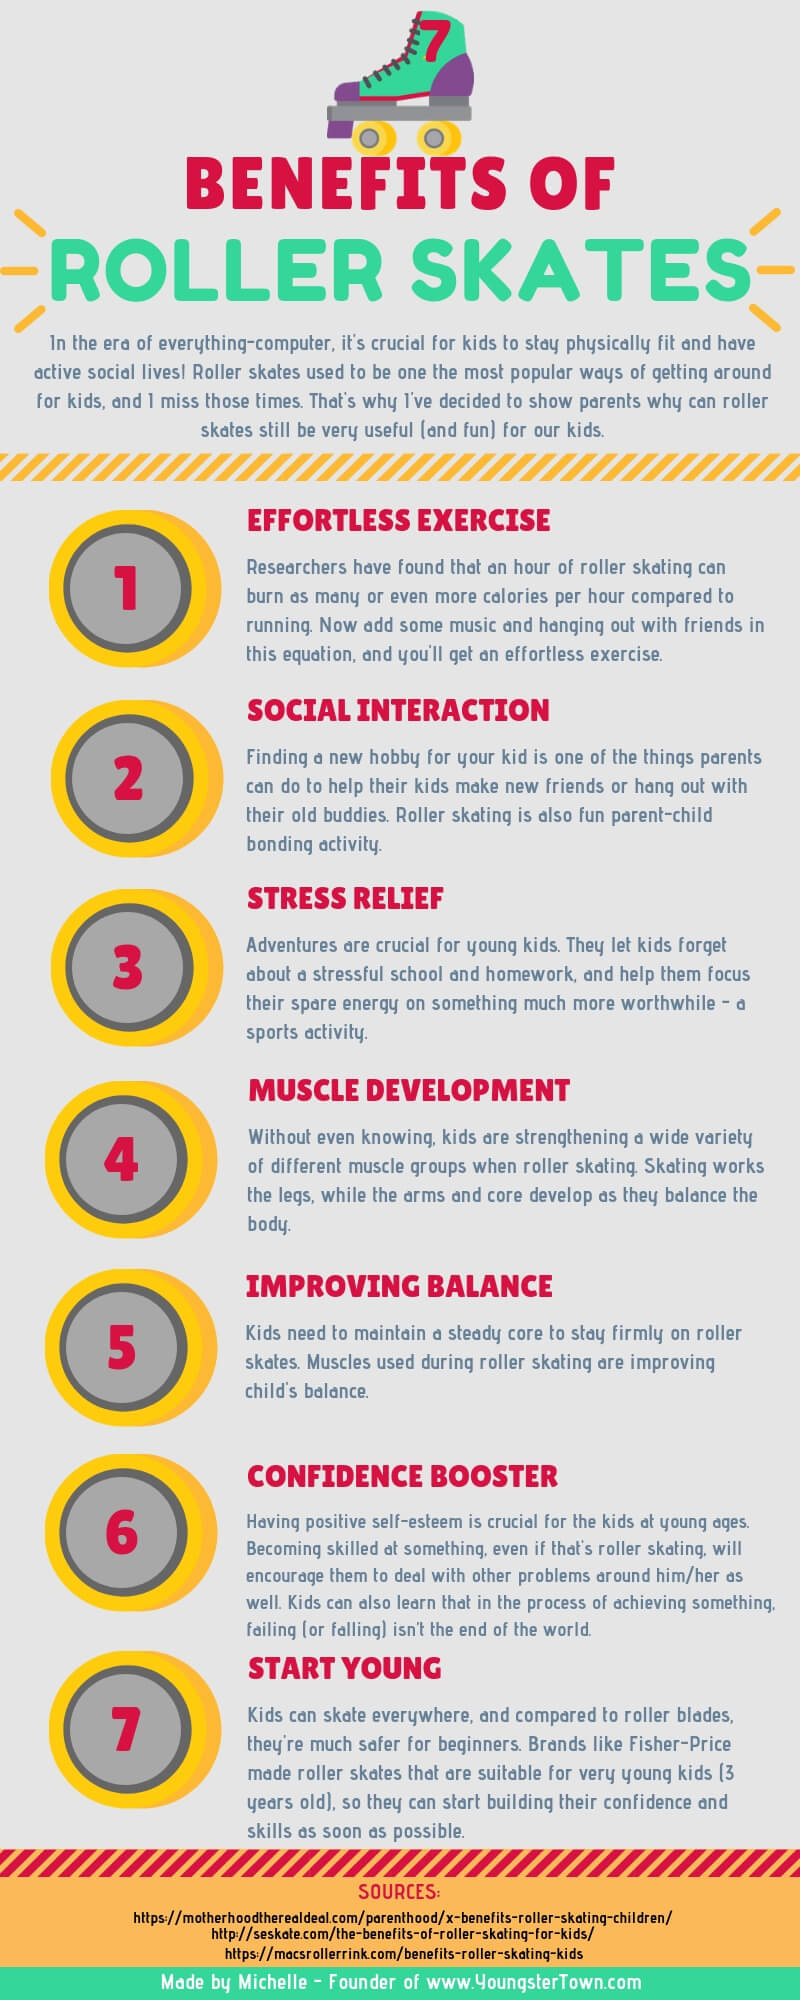 benefits-of-roller-skating-infographic-plaza